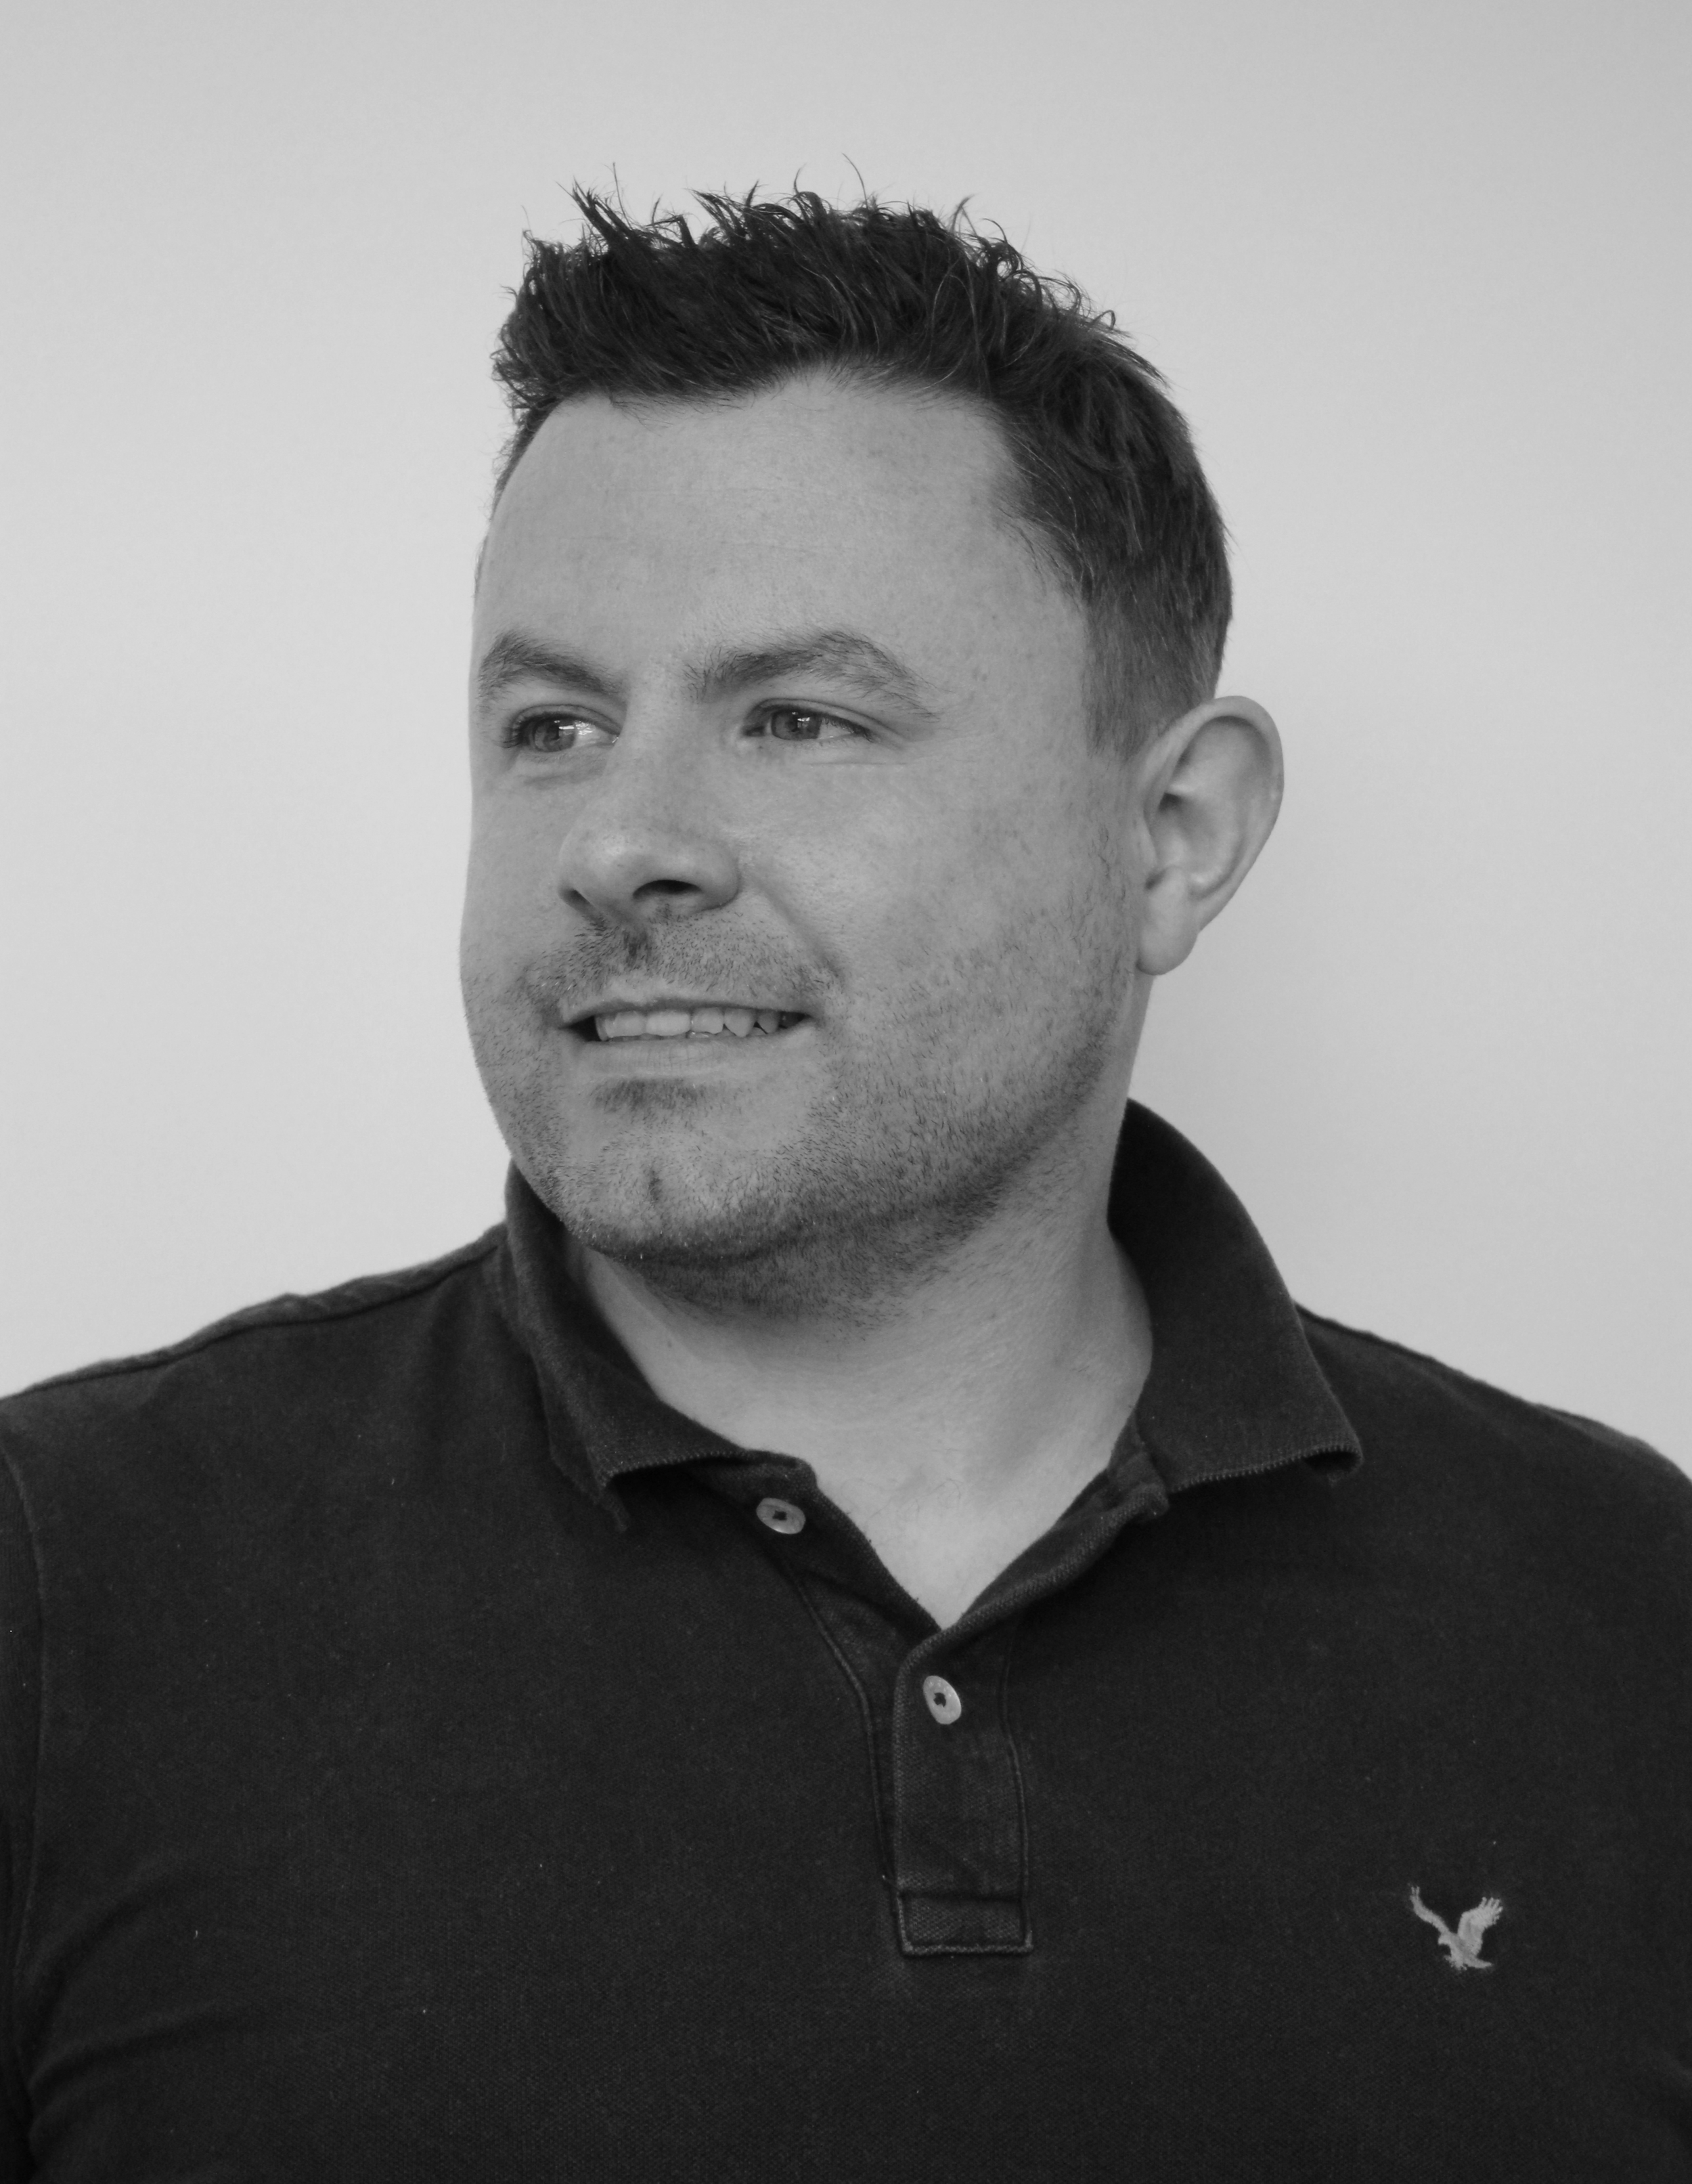 Gareth has over 10 years experience in the FMCG industry, specialising in retail, export and manufacturing, mostly in high impact commercial roles. Gareth consistently develops successful commercial strategies for sustainable business growth, new market entry and improving profitability .   Gareth has also developed and launched his own brand into the market.